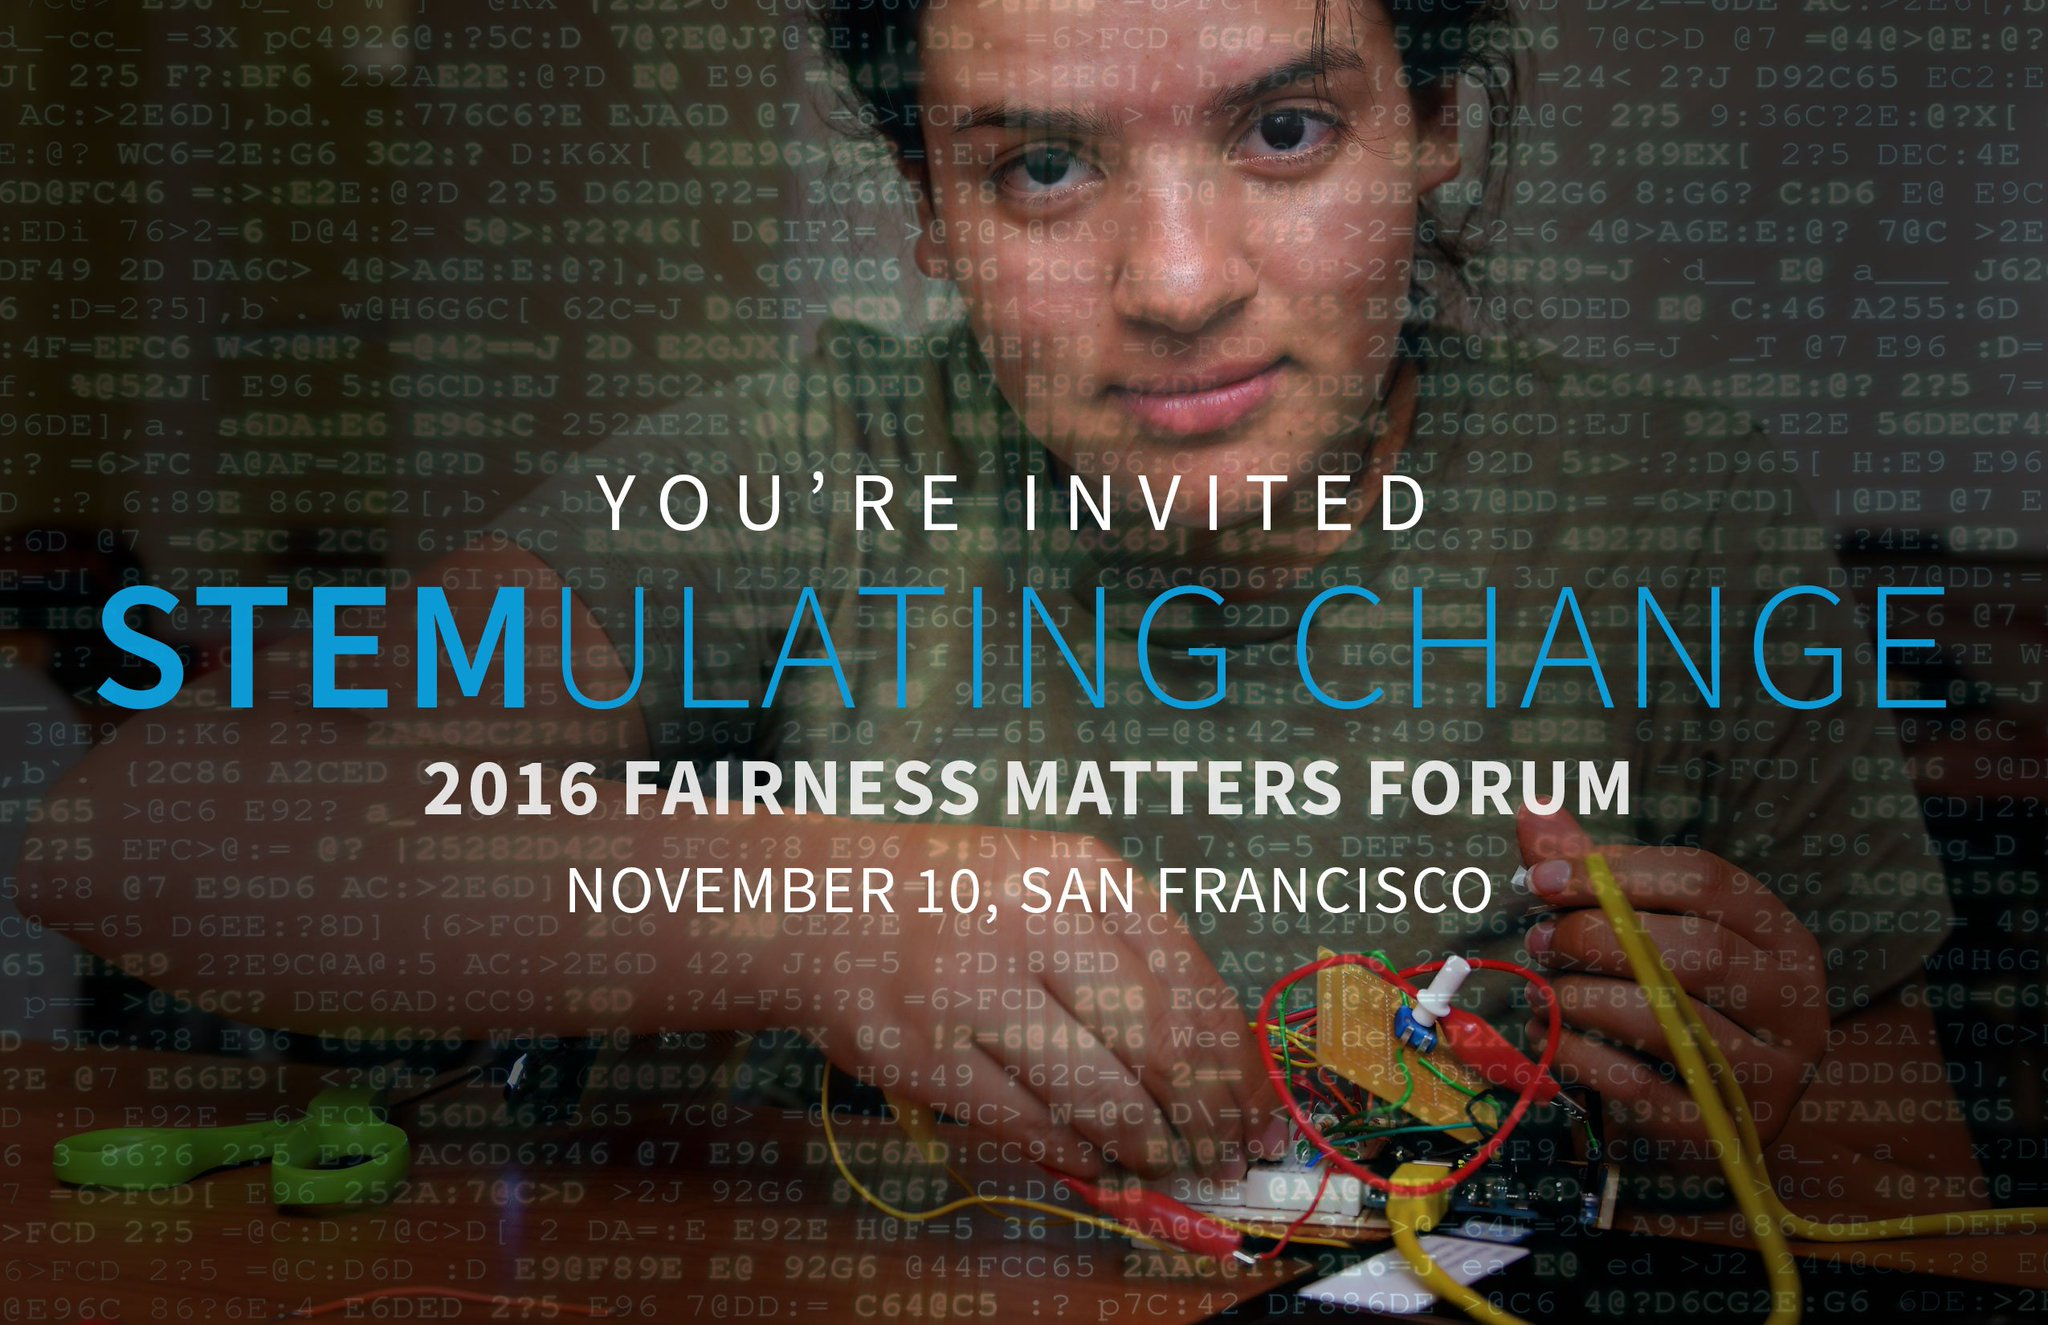 TONIGHT is the night! #FairnessMatters16 is celebrating 15 years of #STEMulatingChange this evening! Join us https://t.co/jlzV6rAaww https://t.co/A4PaHeFuZT